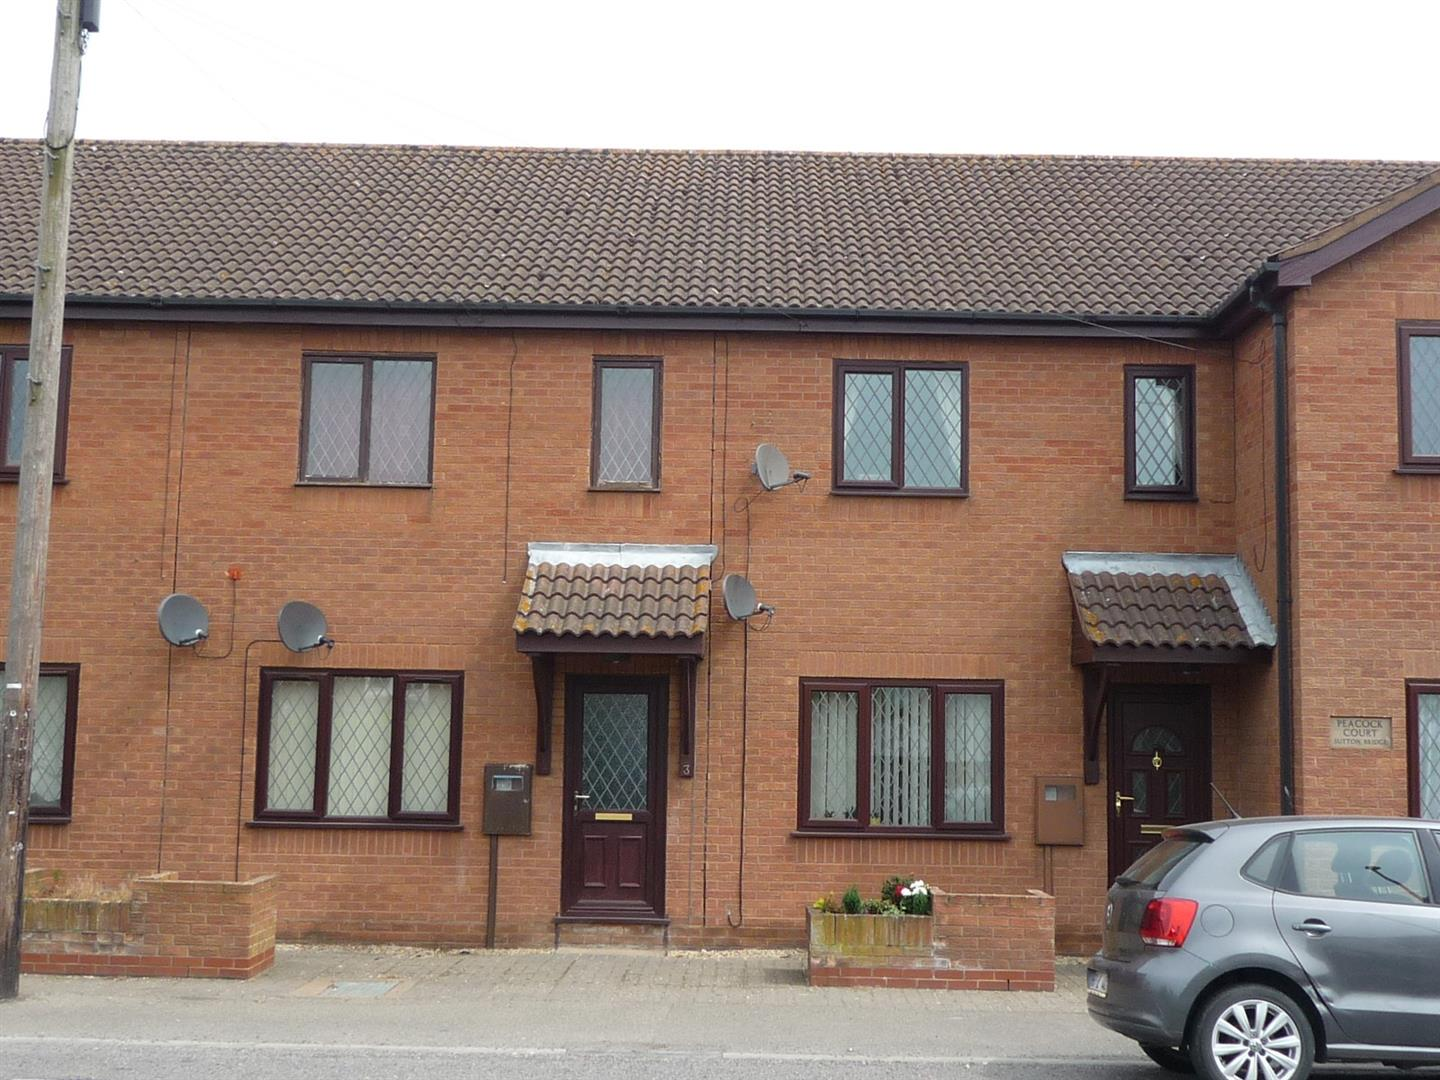 1 bed flat to rent in Sutton Bridge Spalding, PE12 9SB, PE12